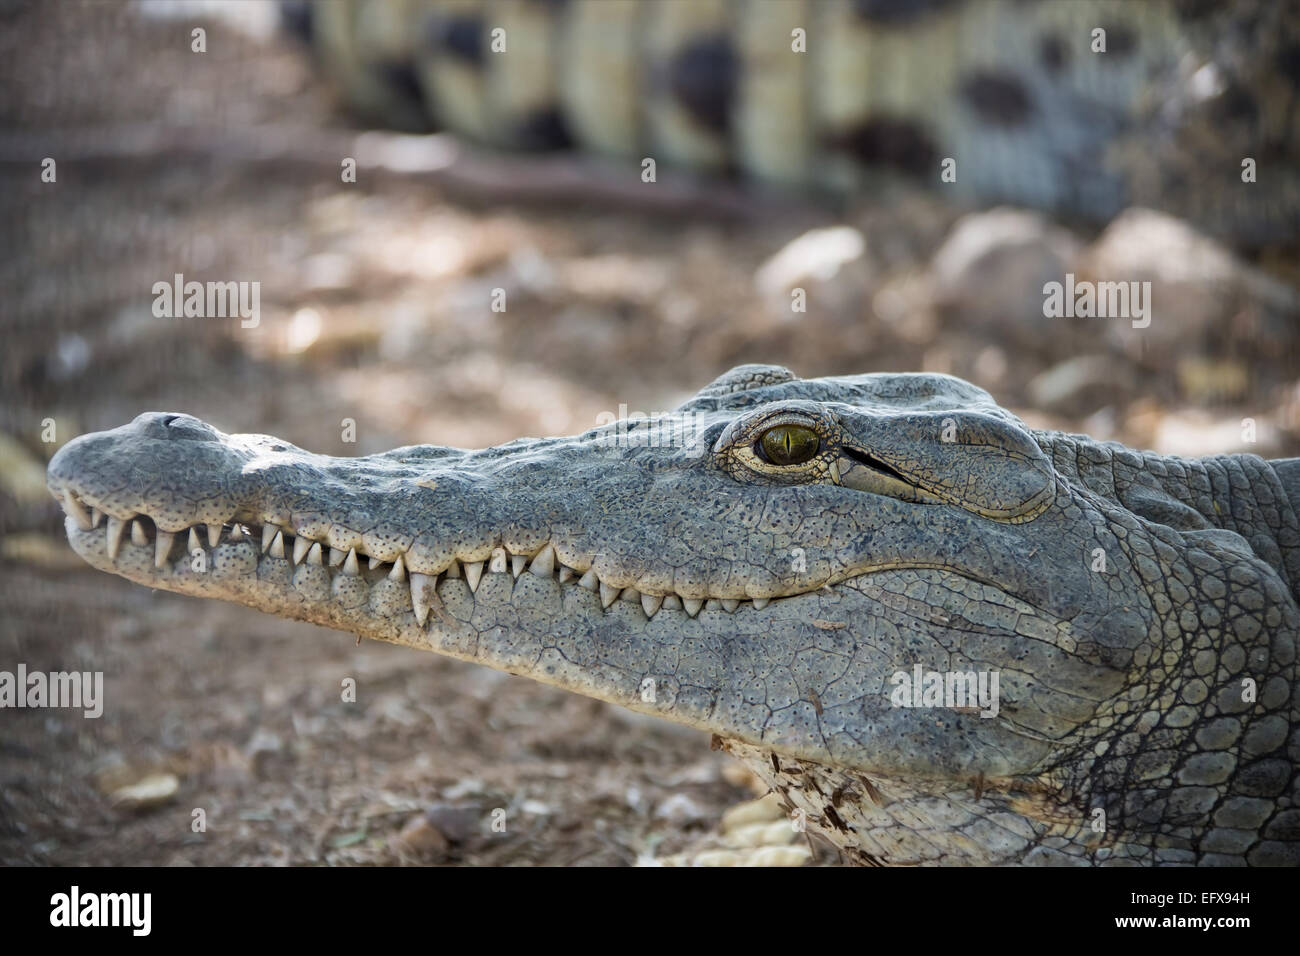 head of a young American crocodile close up Stock Photo